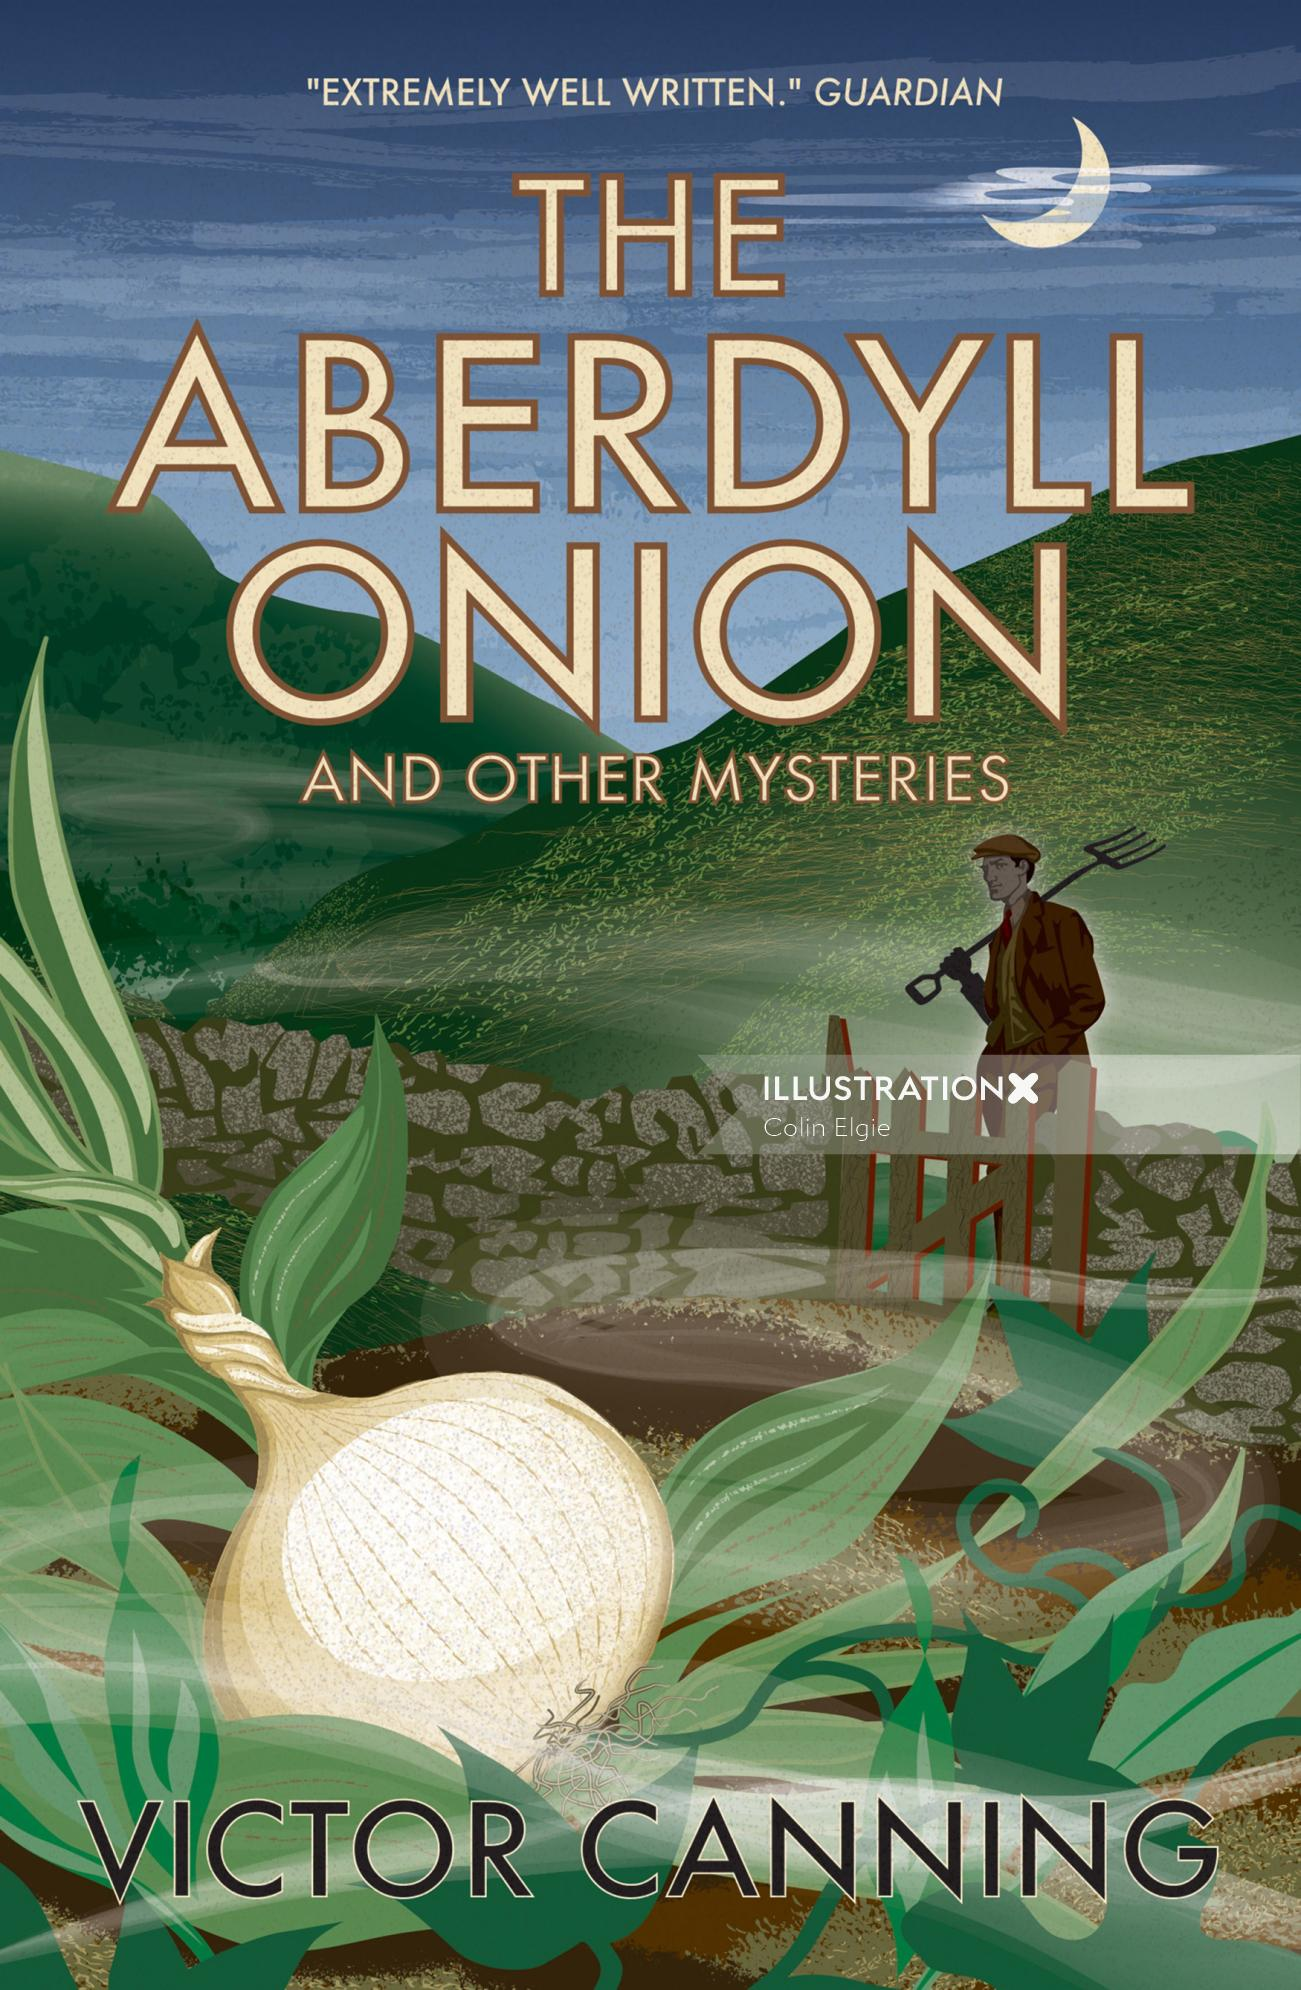 A book cover for a collection of short stories, showing a night time scene set in a mysterious Welsh